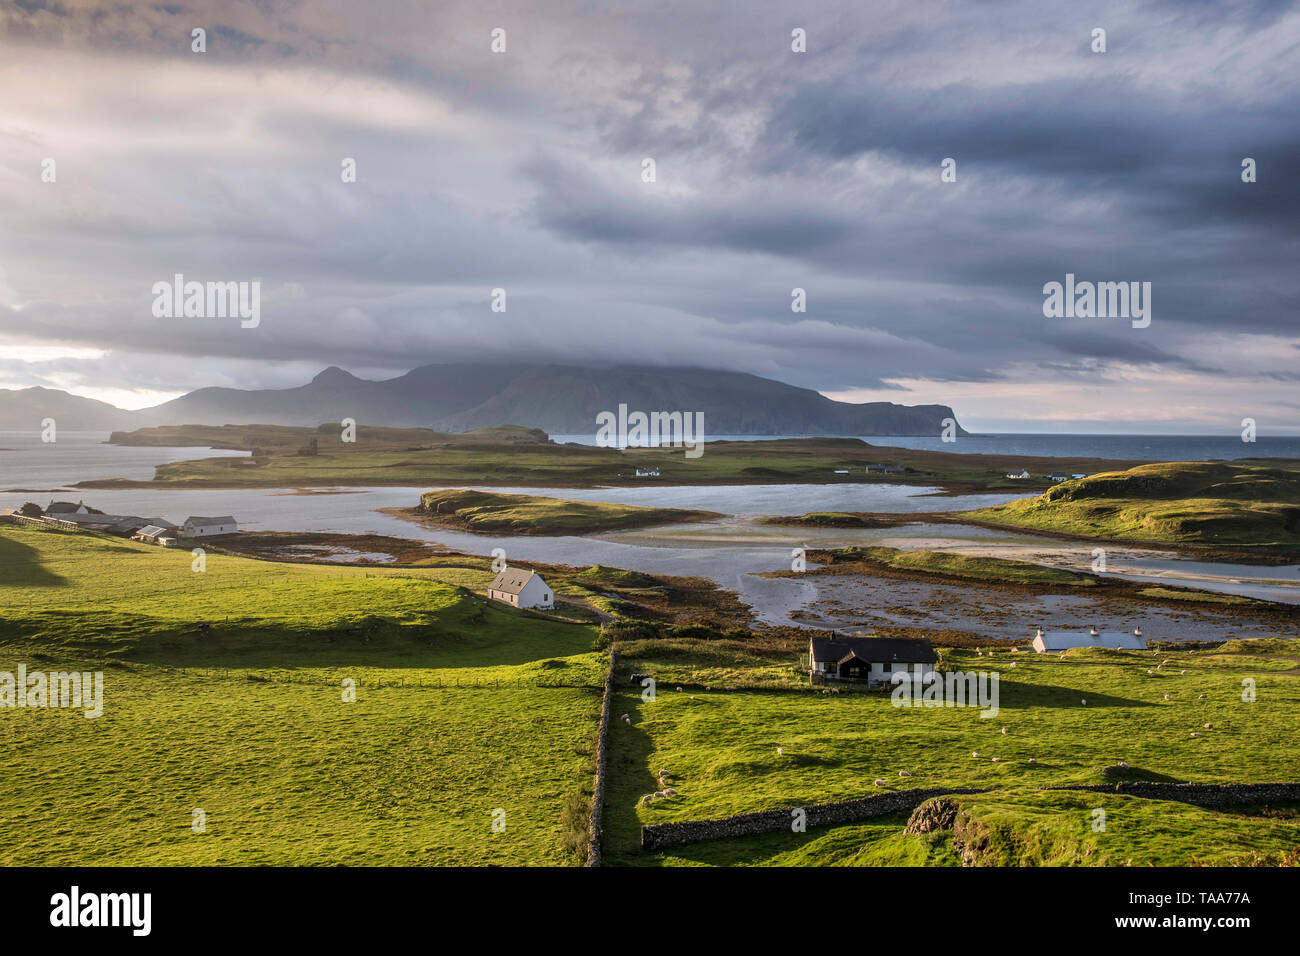 Canna and Sanday, Small isles with view to Rum at sunrise - Stock Image